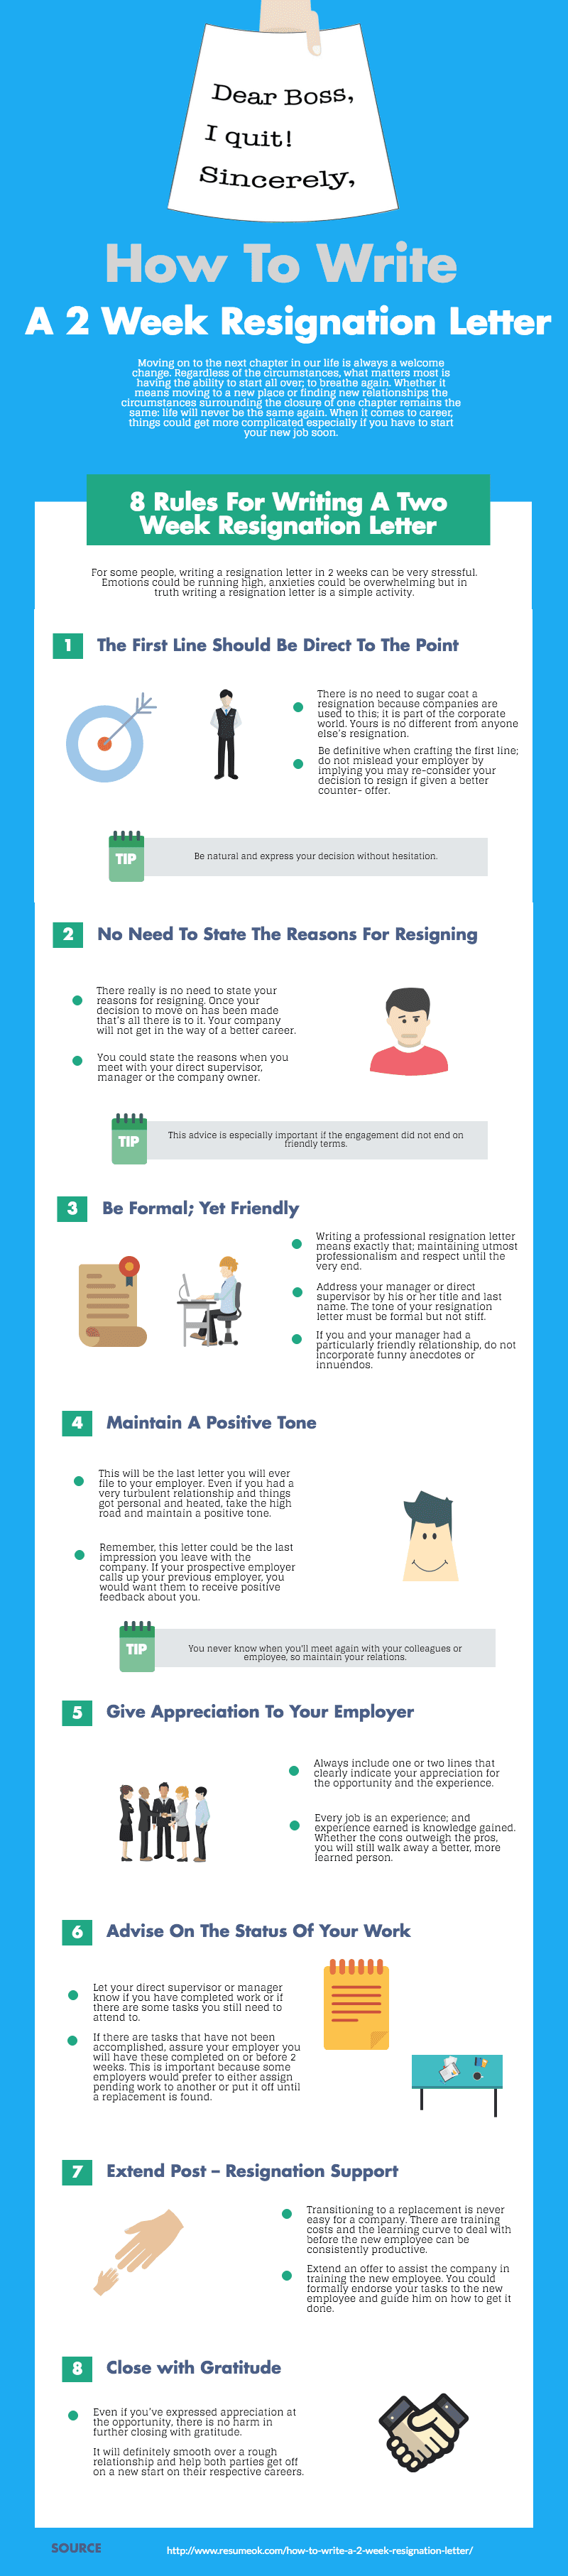 How To Write A 2 Week Resignation Letter Infographic Infographics